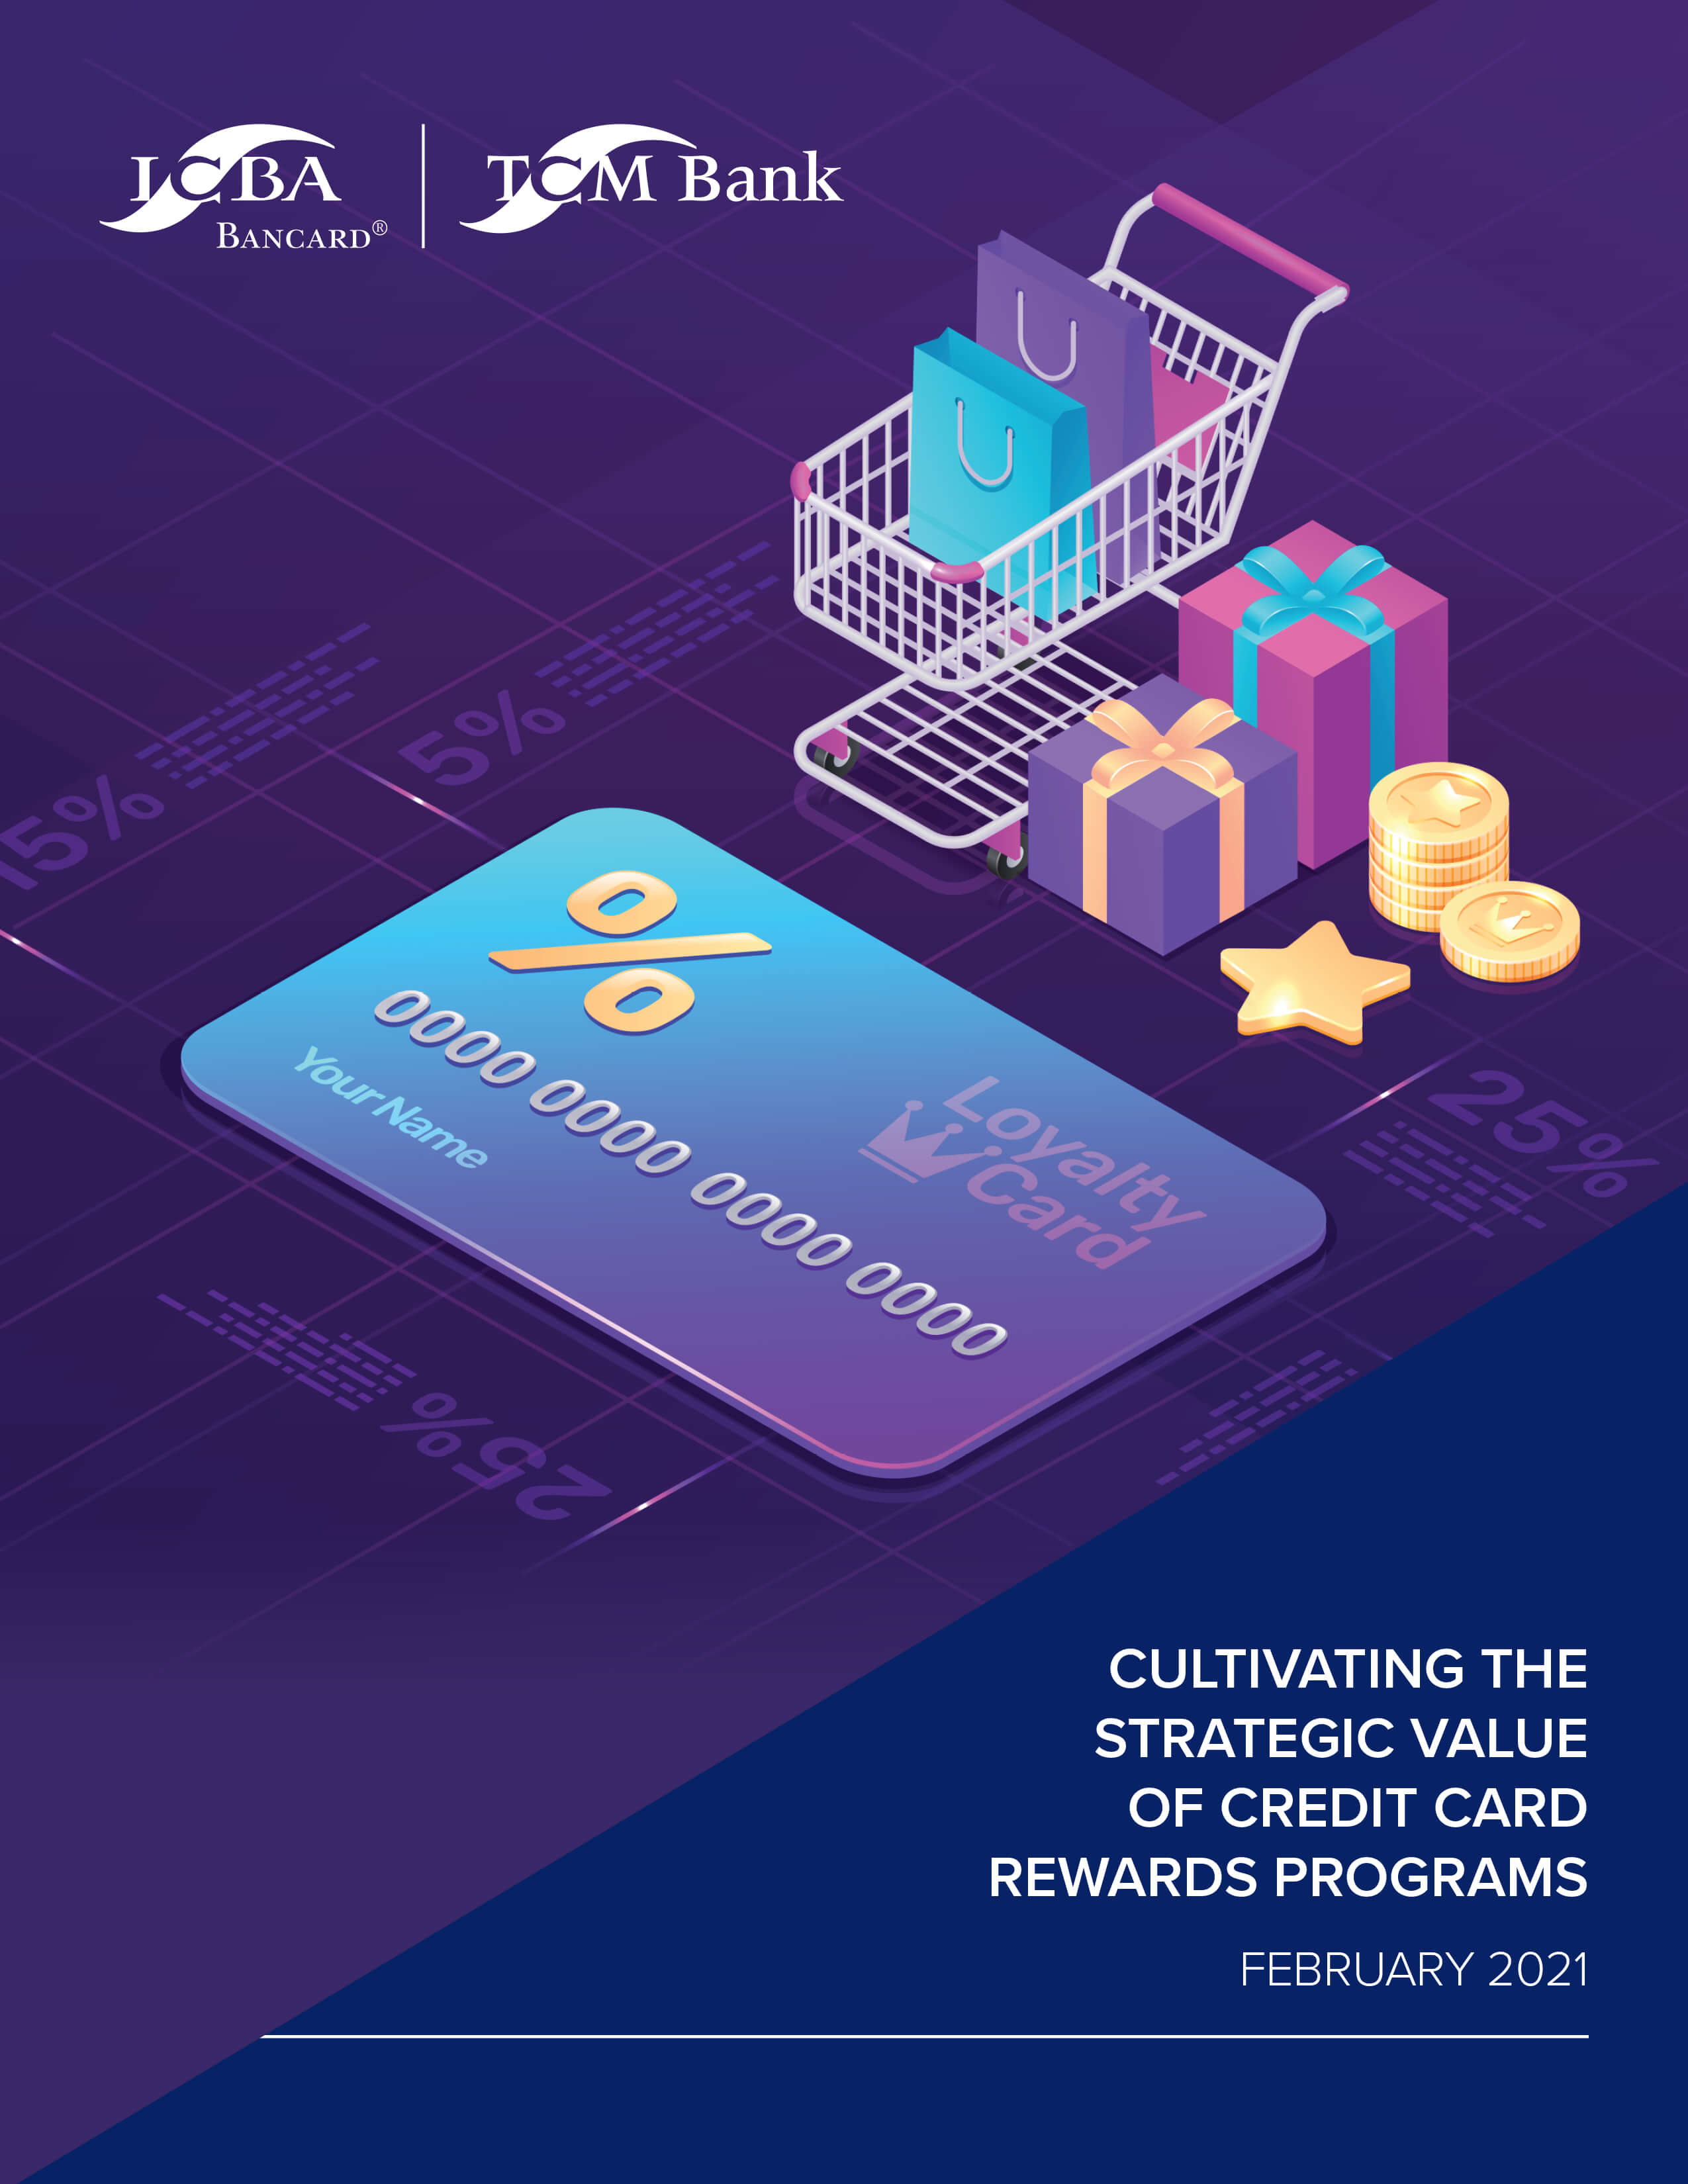 Cultivating the Strategic Value of Credit Card Rewards Programs